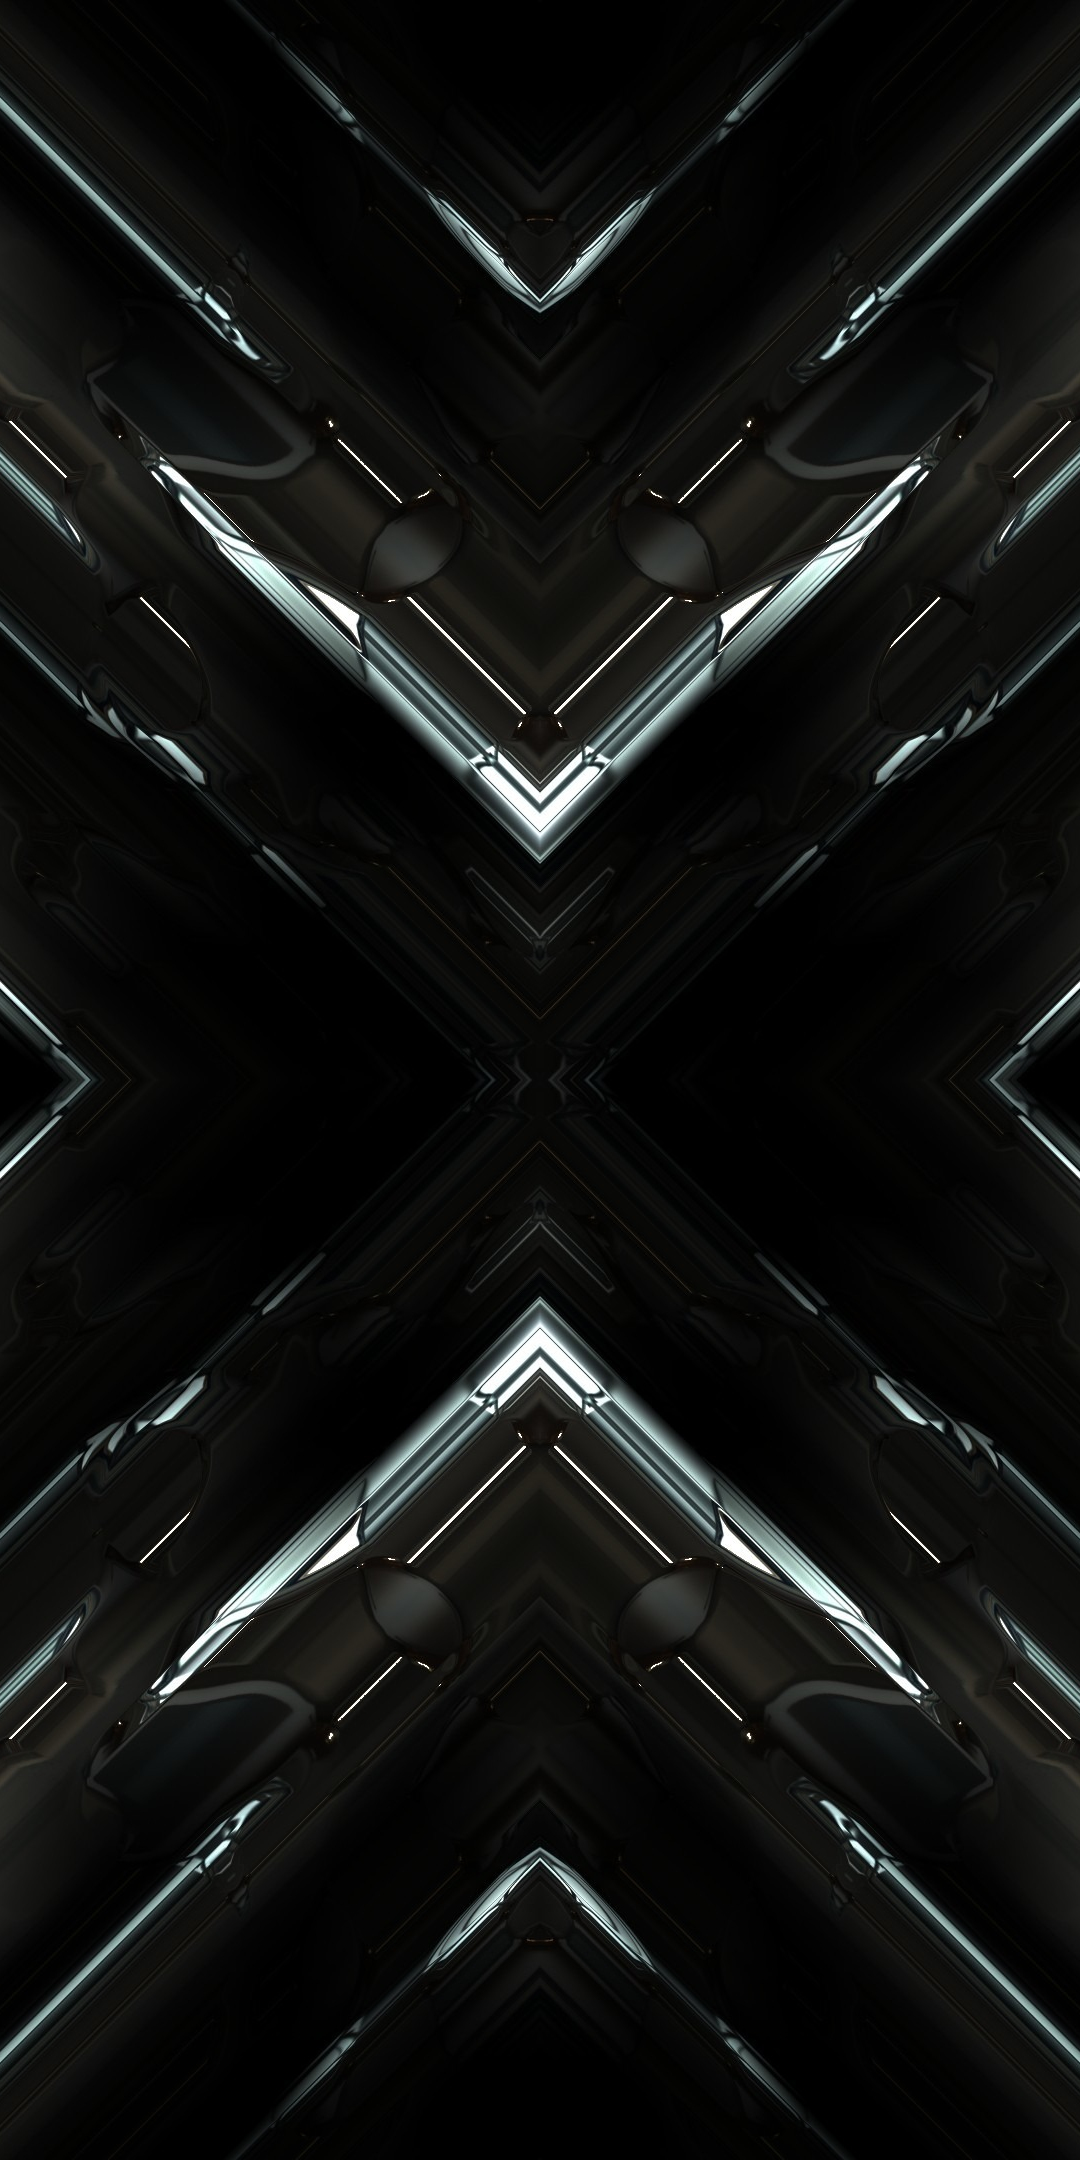 Download 1080x2160 Wallpaper Fractal Dark Abstract Honor 7x Honor 9 Lite Honor View 10 Hd Image Background 1872